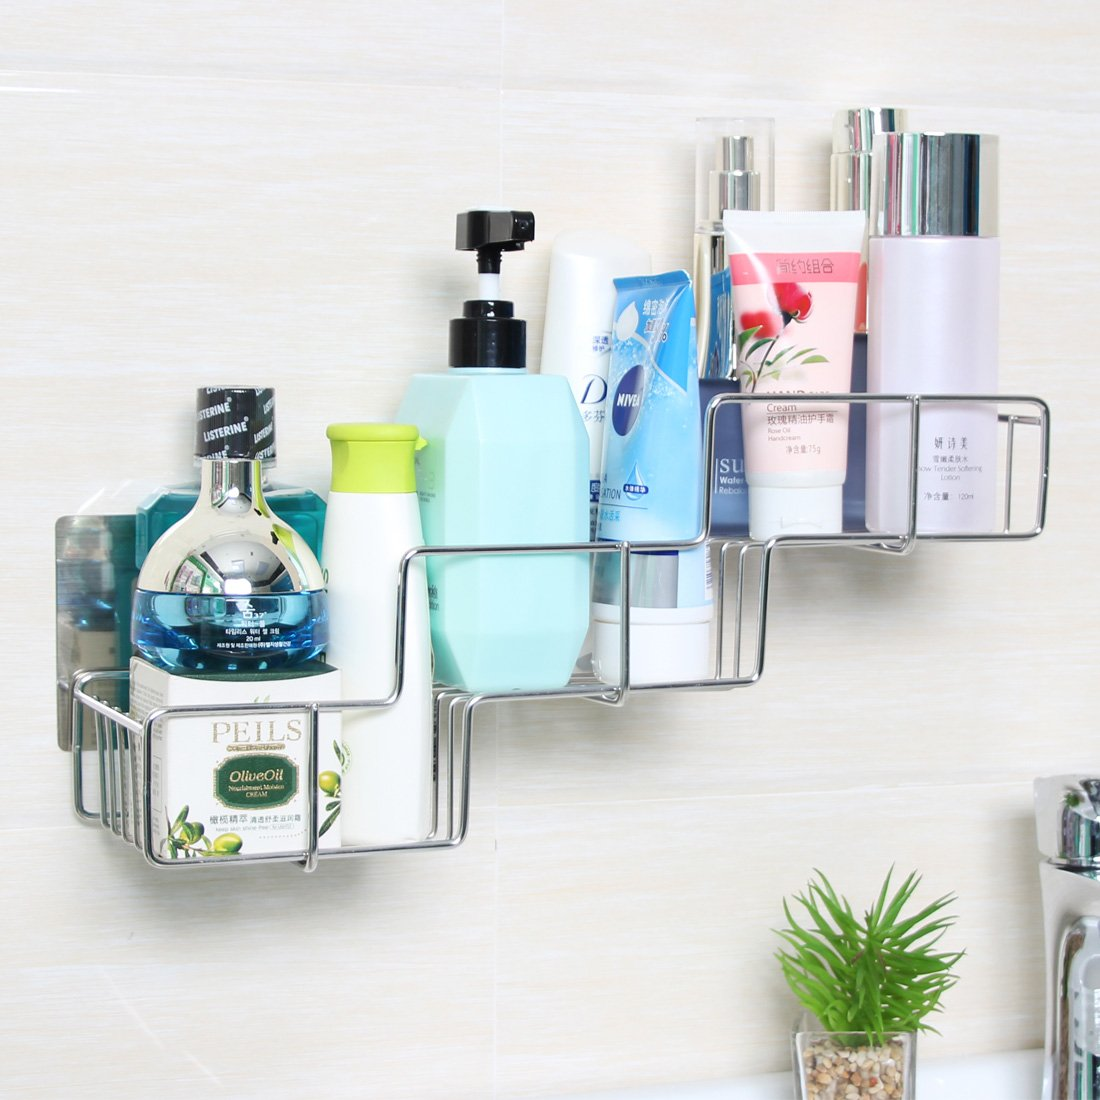 Stainless Steel Shelf Organizer, Rerii Self Adhesive Stainless Steel ...